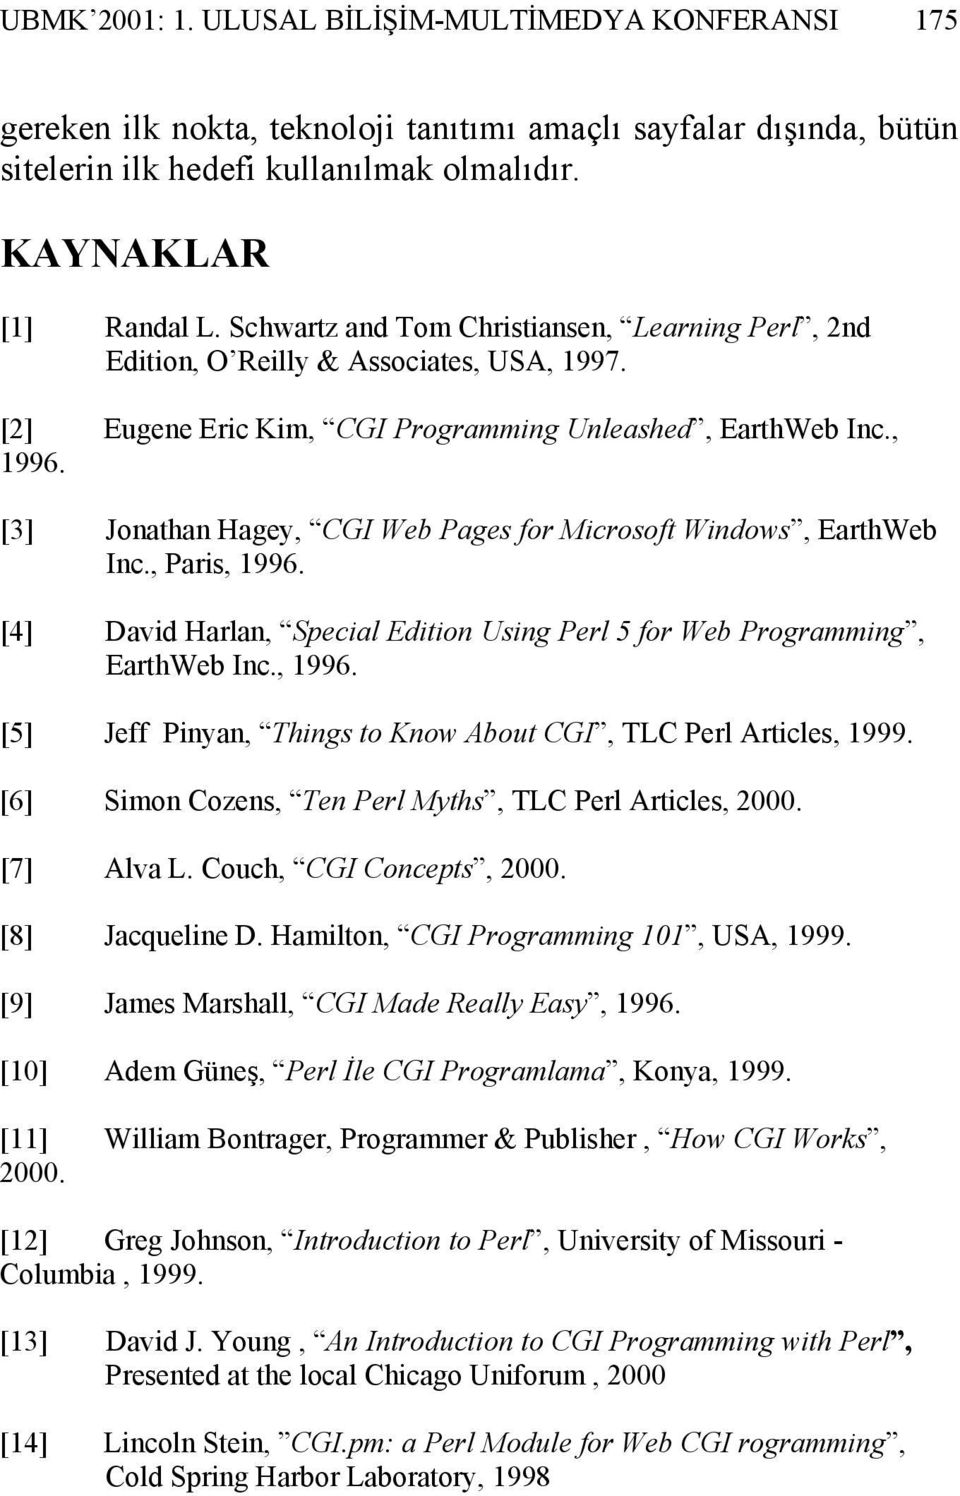 [3] Jonathan Hagey, CGI Web Pages for Microsoft Windows, EarthWeb Inc., Paris, 1996. [4] David Harlan, Special Edition Using Perl 5 for Web Programming, EarthWeb Inc., 1996. [5] Jeff Pinyan, Things to Know About CGI, TLC Perl Articles, 1999.